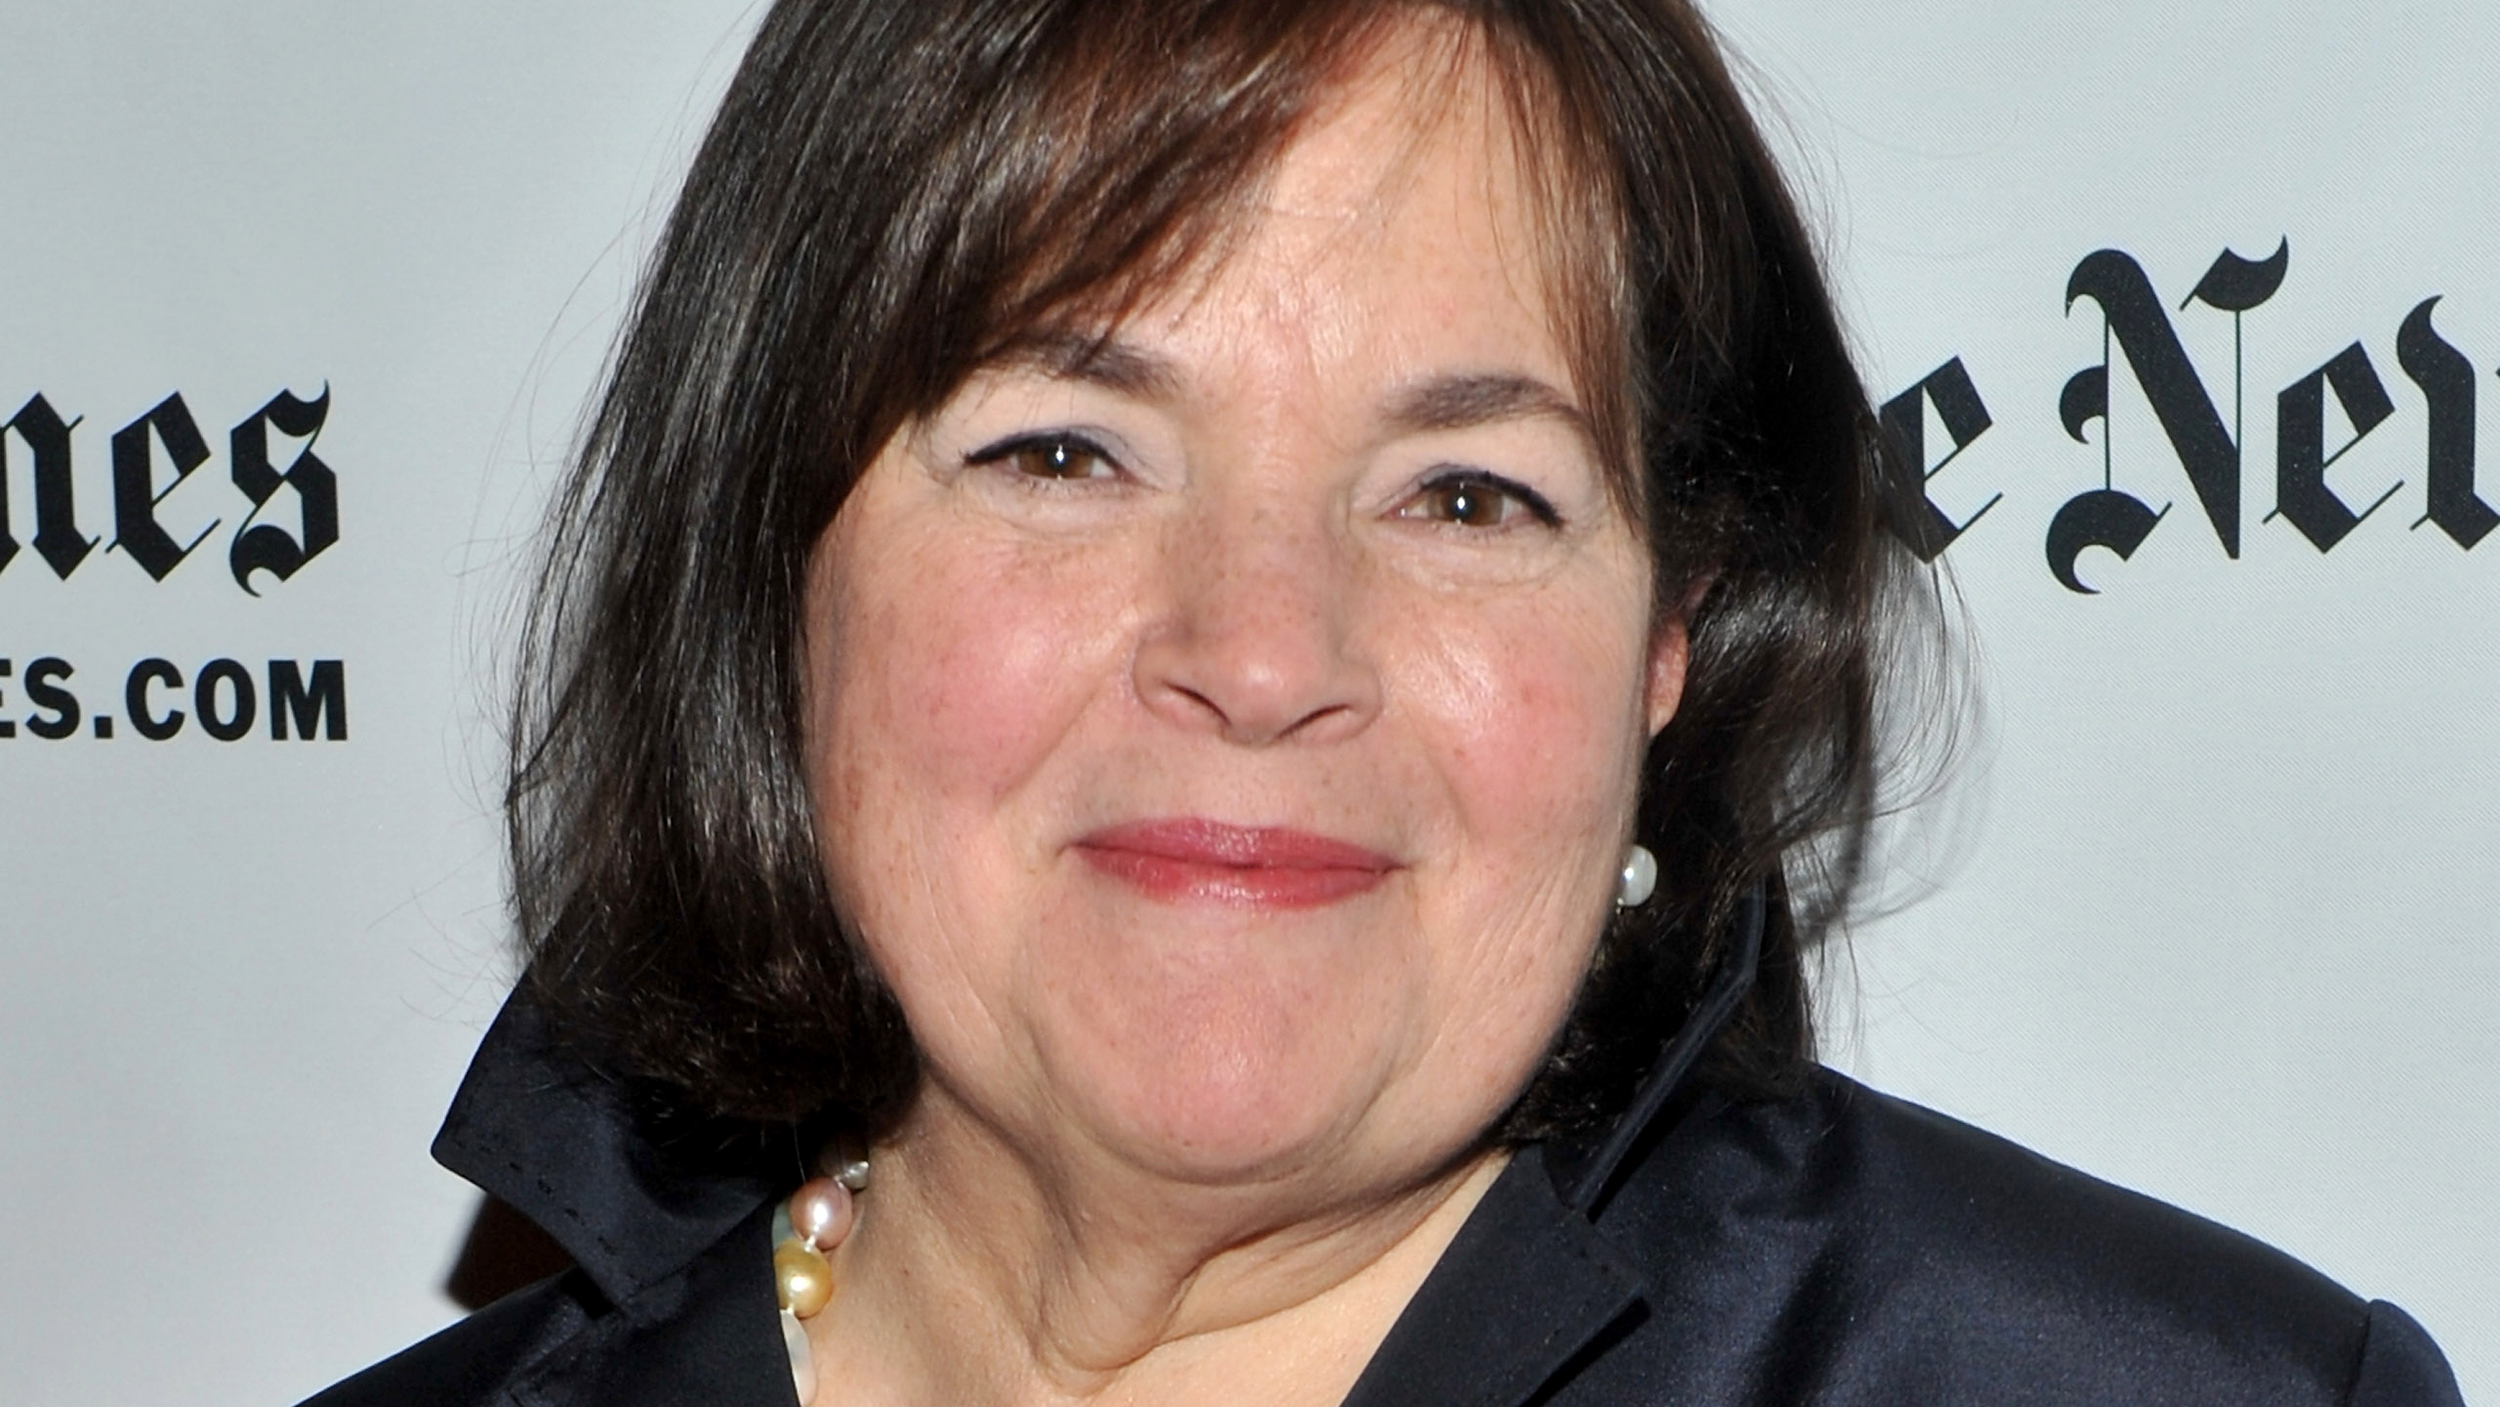 Ina Garten Photos ina garten's new cooking show 'cook like a pro' - today